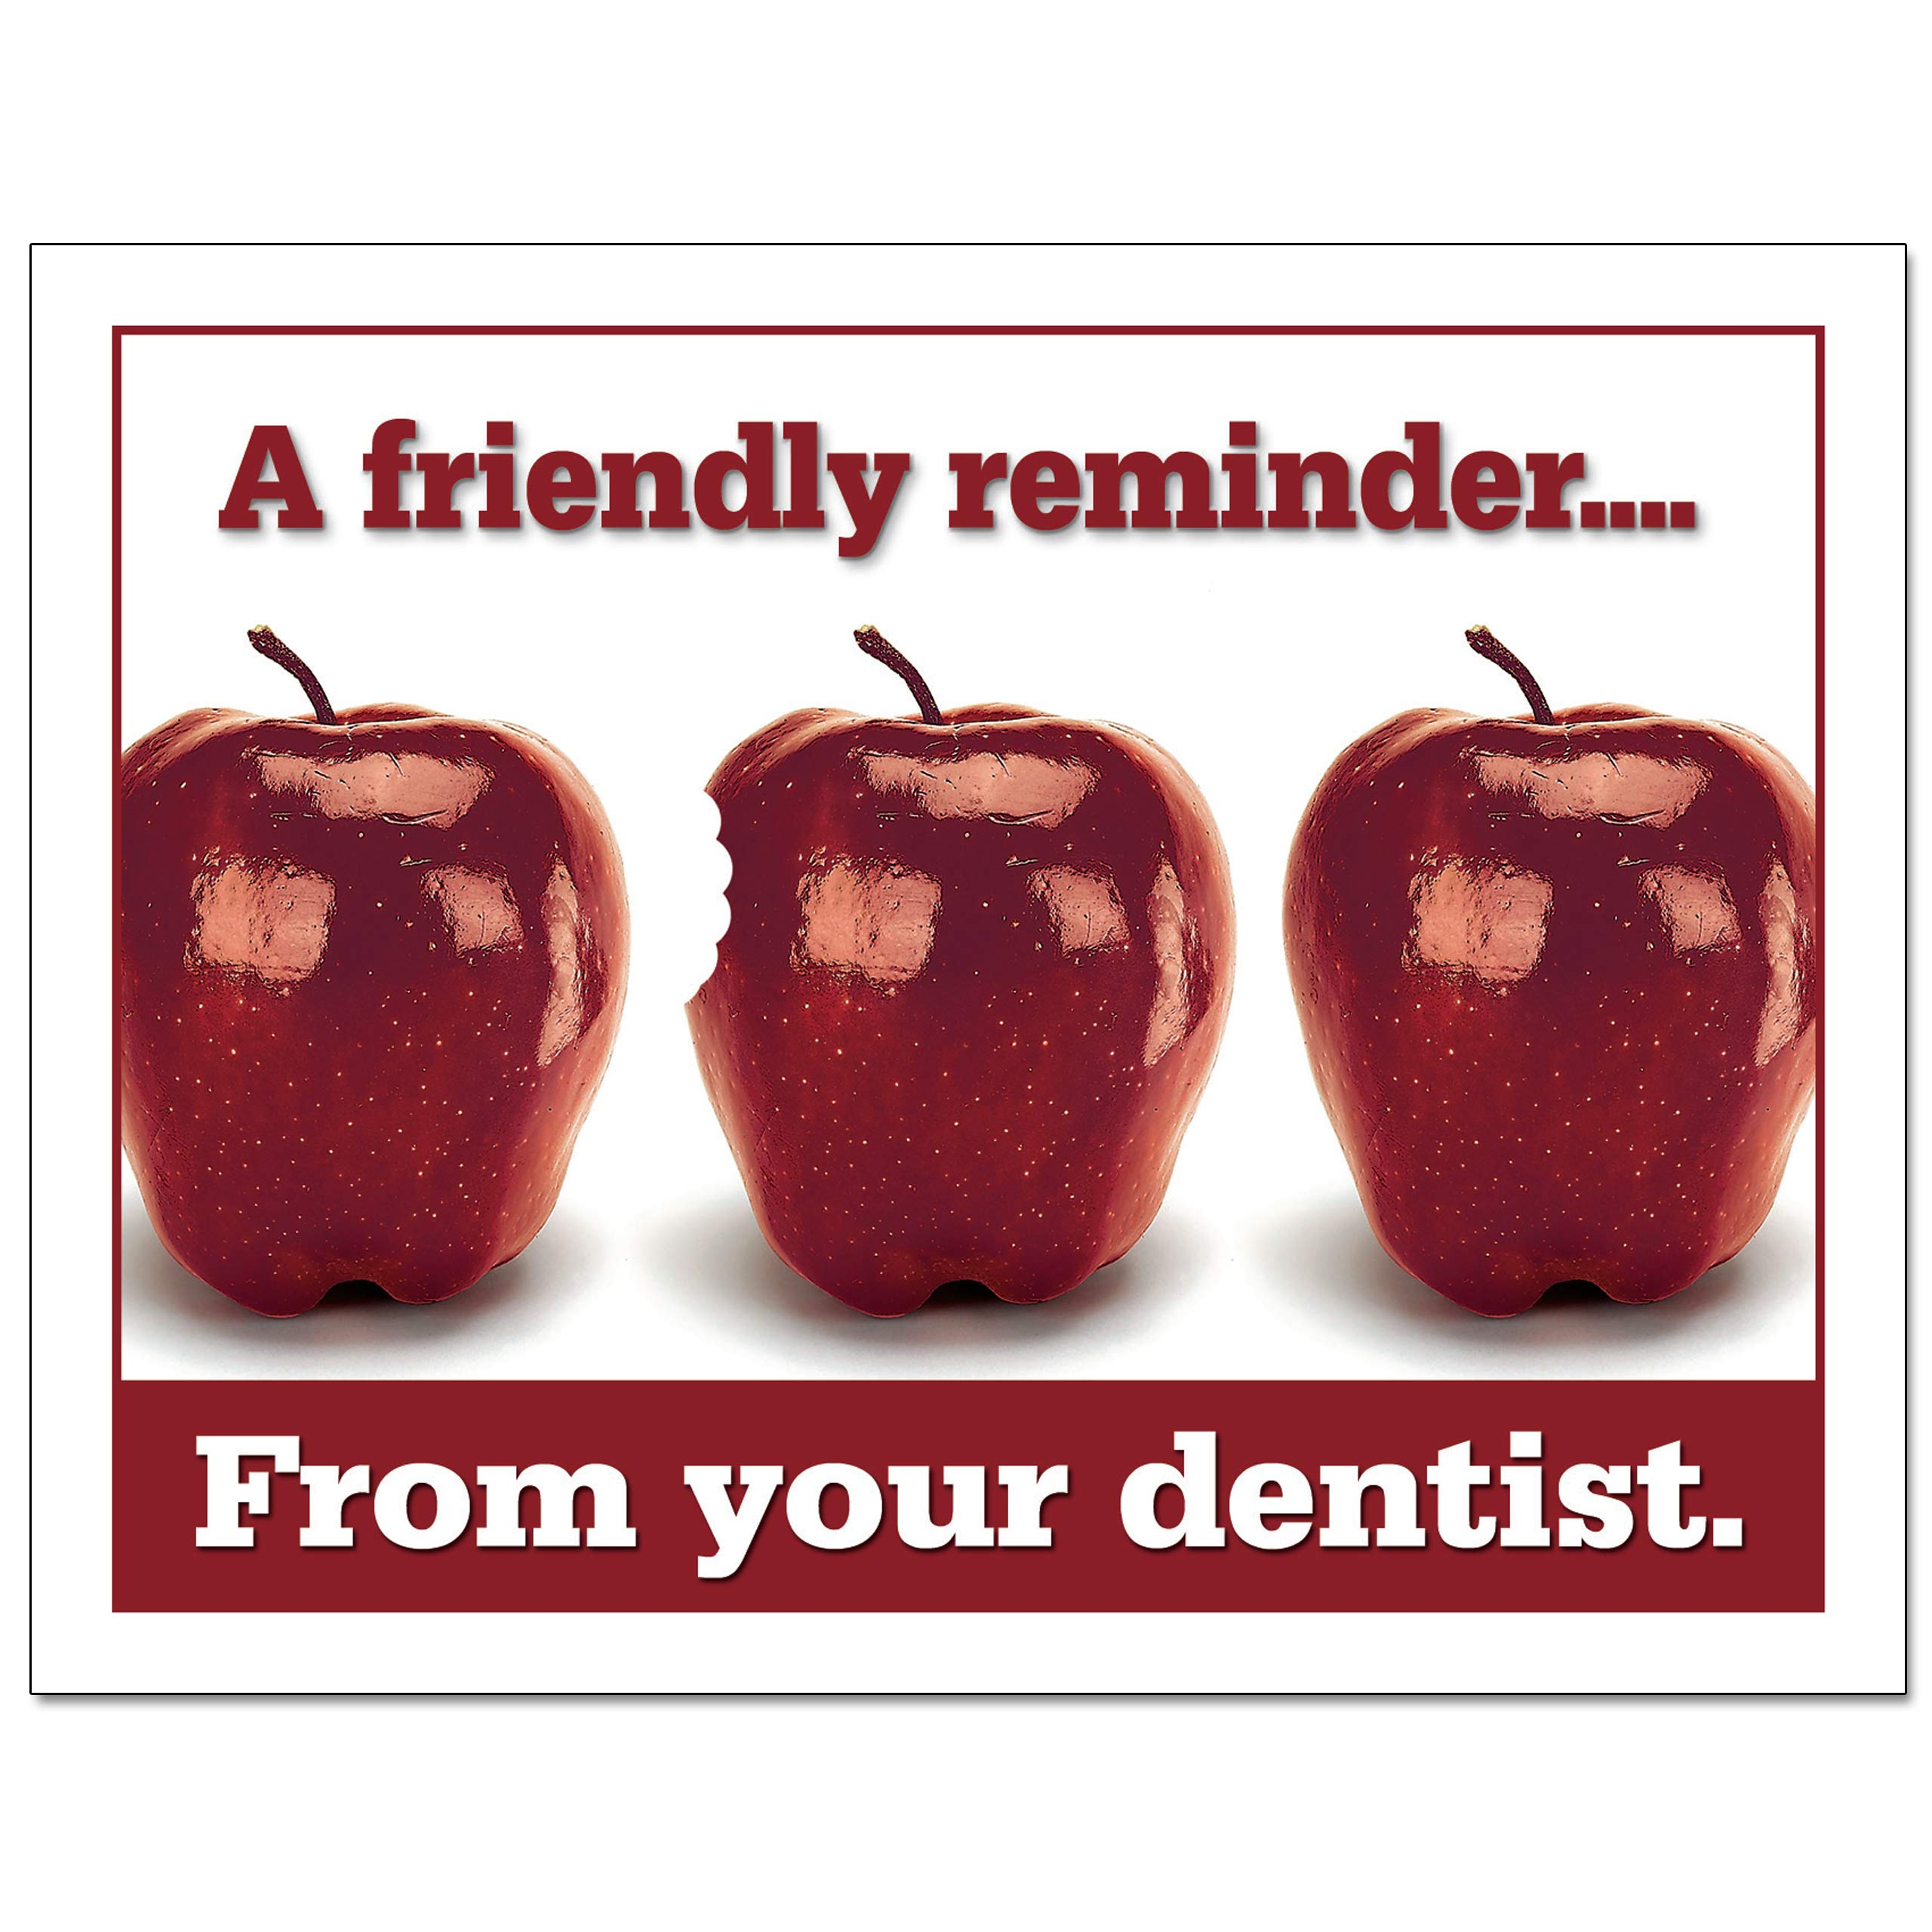 Laser Reminder Postcards, Dental Appointment Reminder Postcards. 4 Cards Perforated for Tear-Off at 4.25'' x 5.5'' on an 8.5'' x 11'' Sheet of 8 Pt Card Stock. DEN106-LZS (5000) by Custom Recall (Image #3)